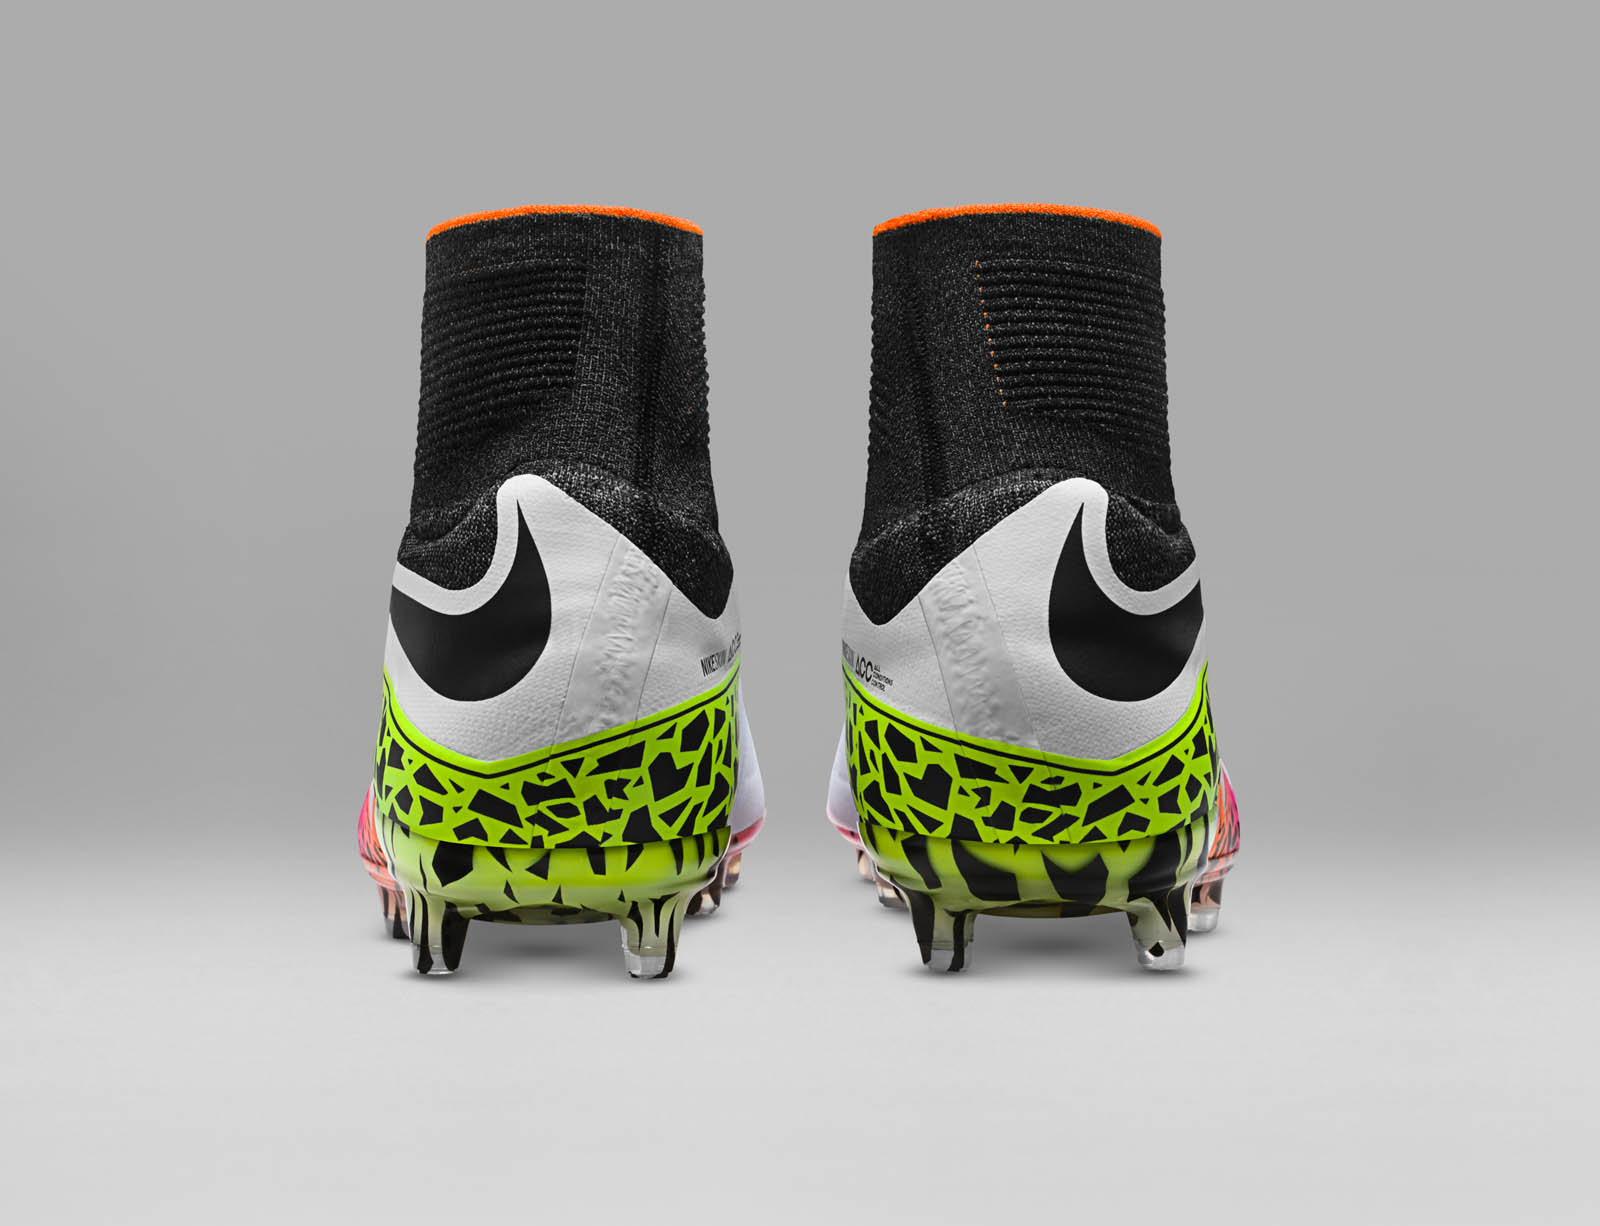 530a12a7e The Nike Hypervenom Phantom II 2016 Radiant Reveal Football Boot retails at  the same price as all previous colorways of the cutting-edge boot (275 USD